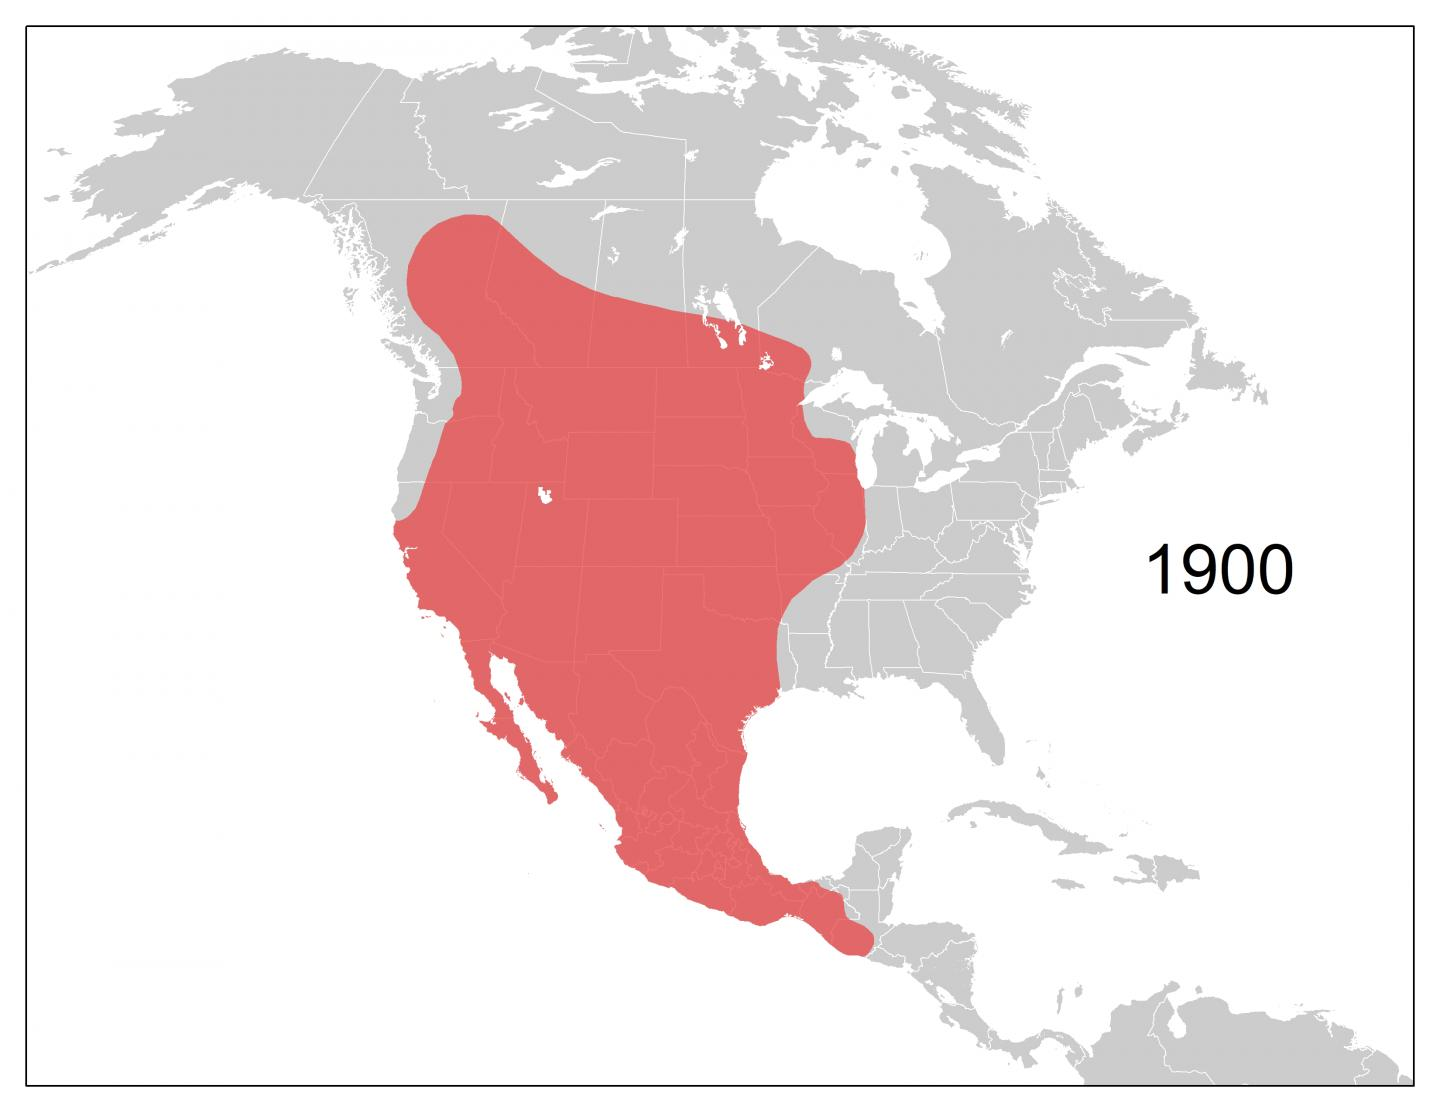 Coyote Range Expansion by Decade, 1900-2016